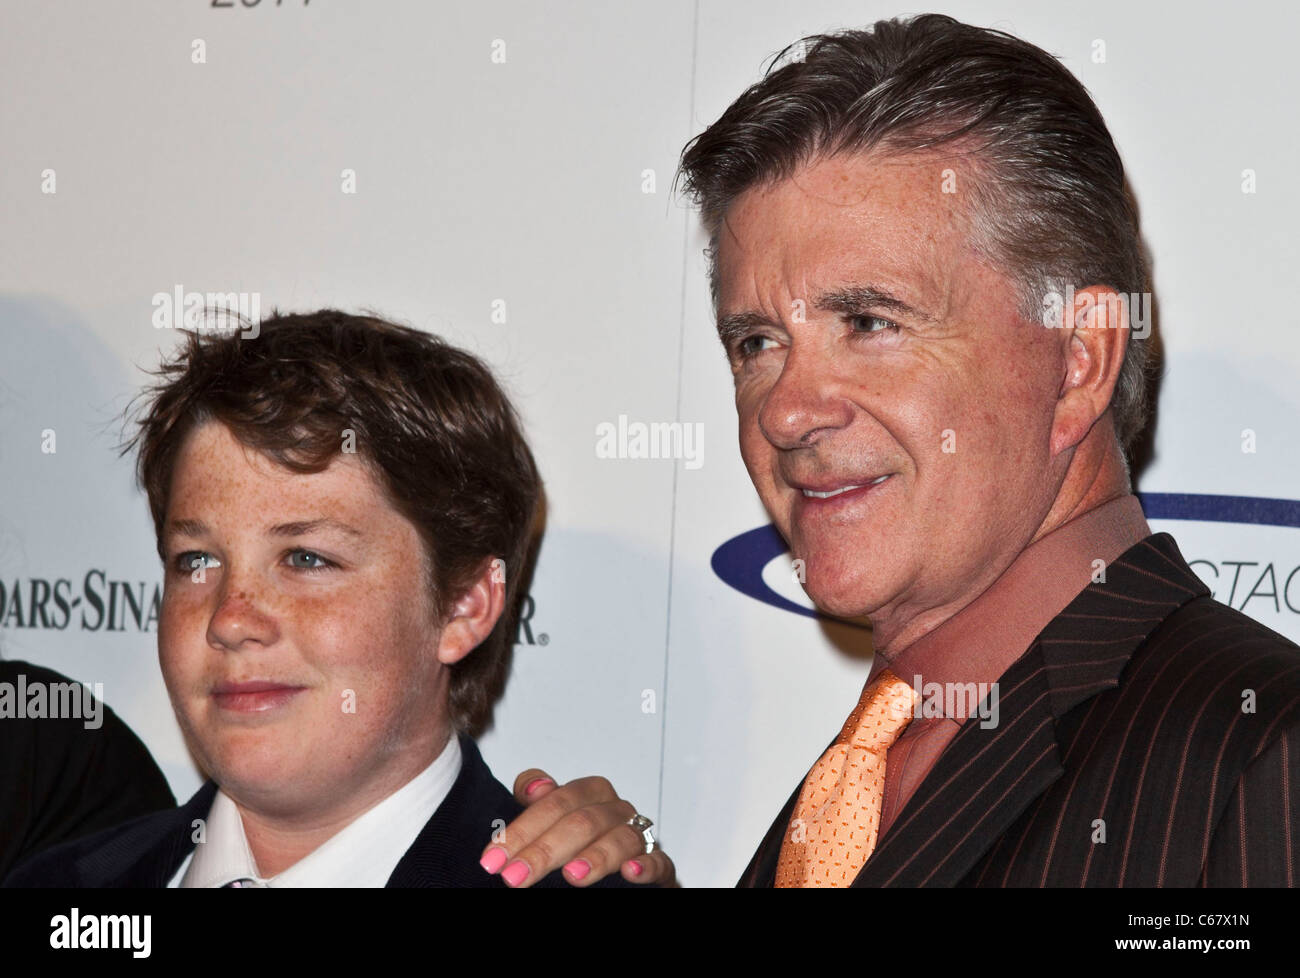 Alan Thicke at arrivals for 26th Anniversary Sports Spectacular, Hyatt Regency Century Plaza Hotel, Los Angeles, - Stock Image